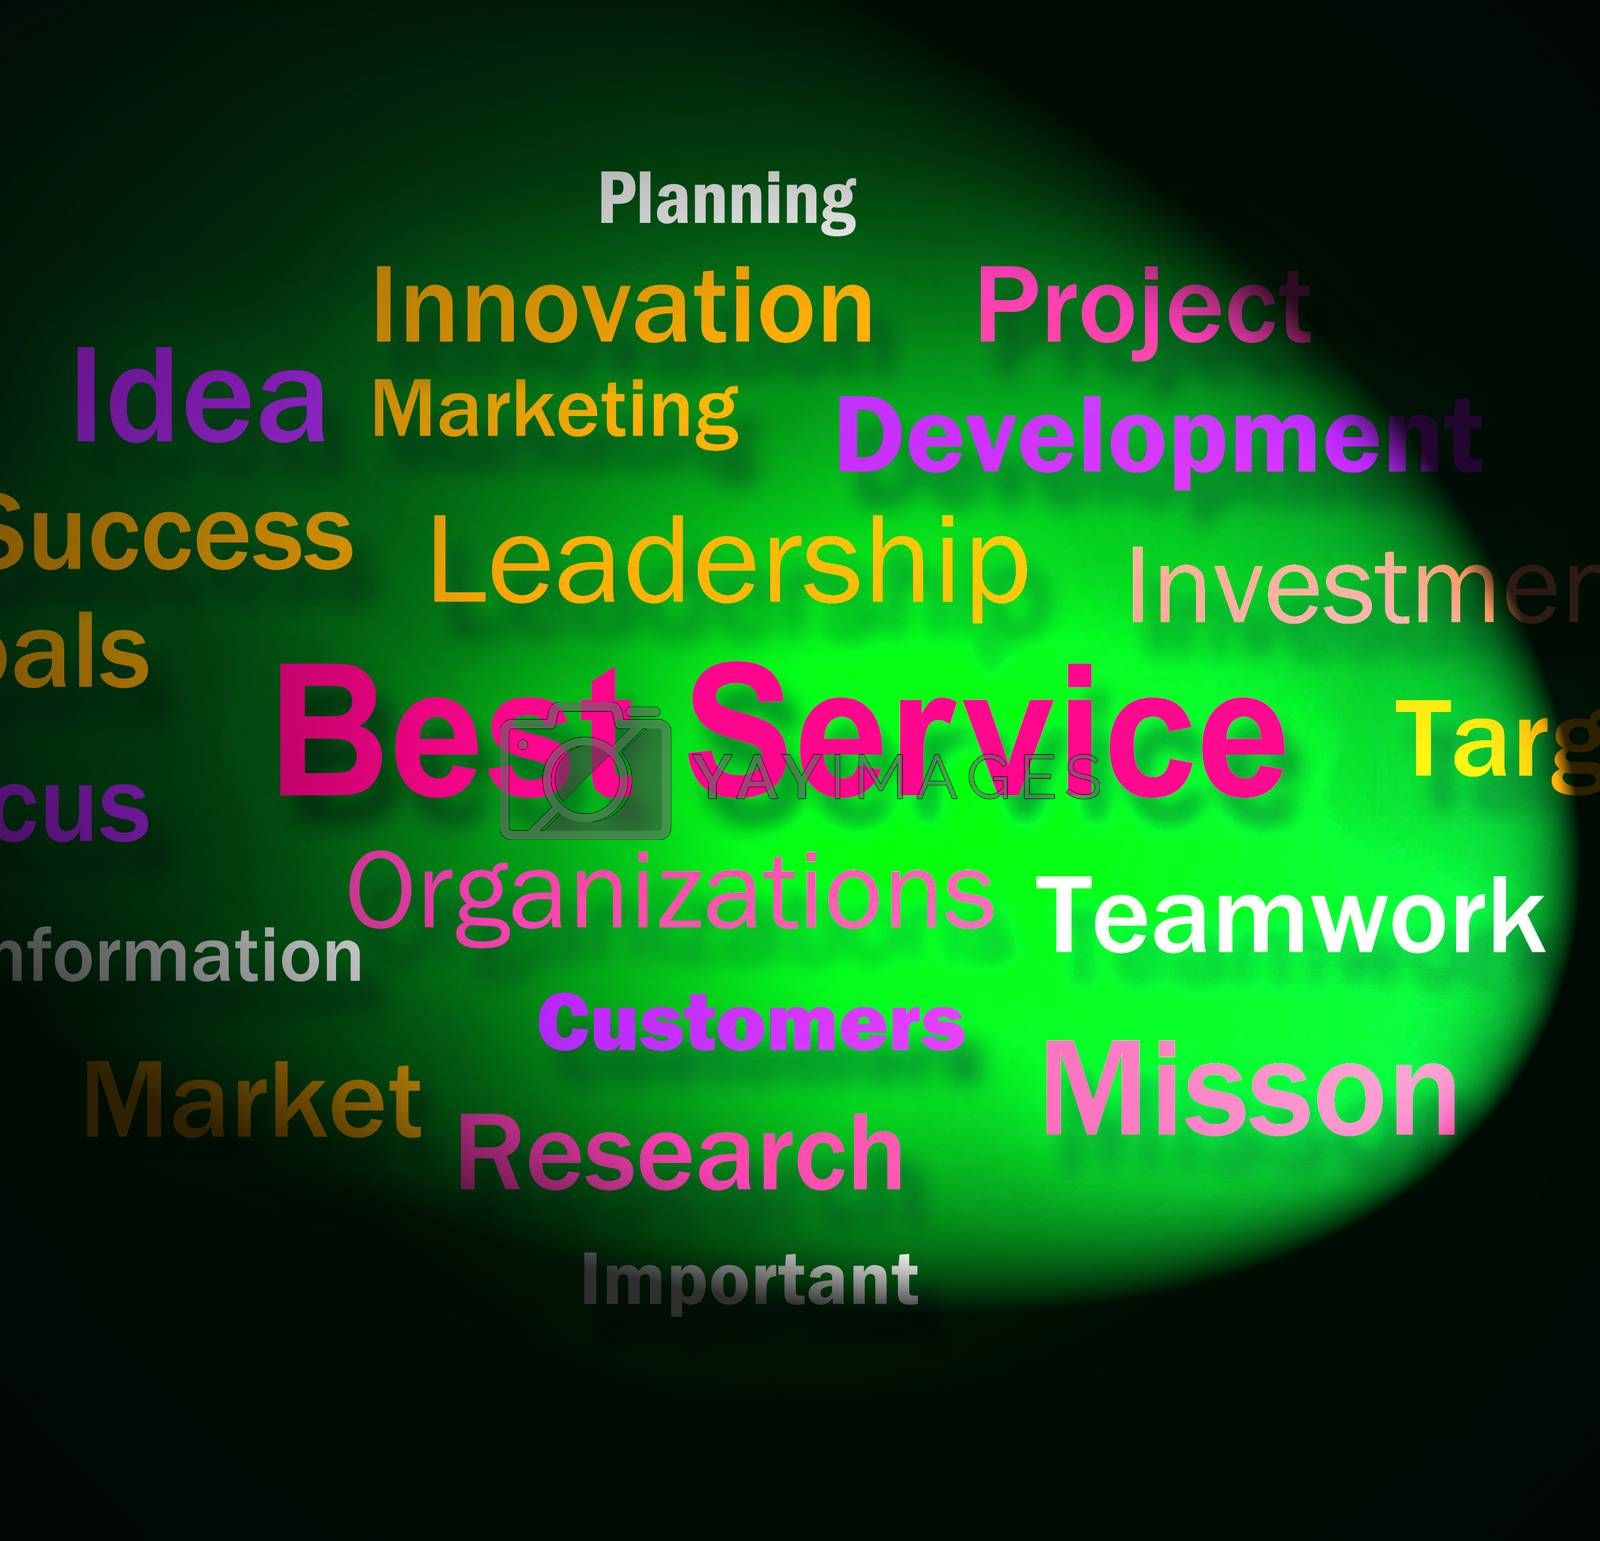 Best Service Words Shows Steps For Delivery Of Services by stuartmiles